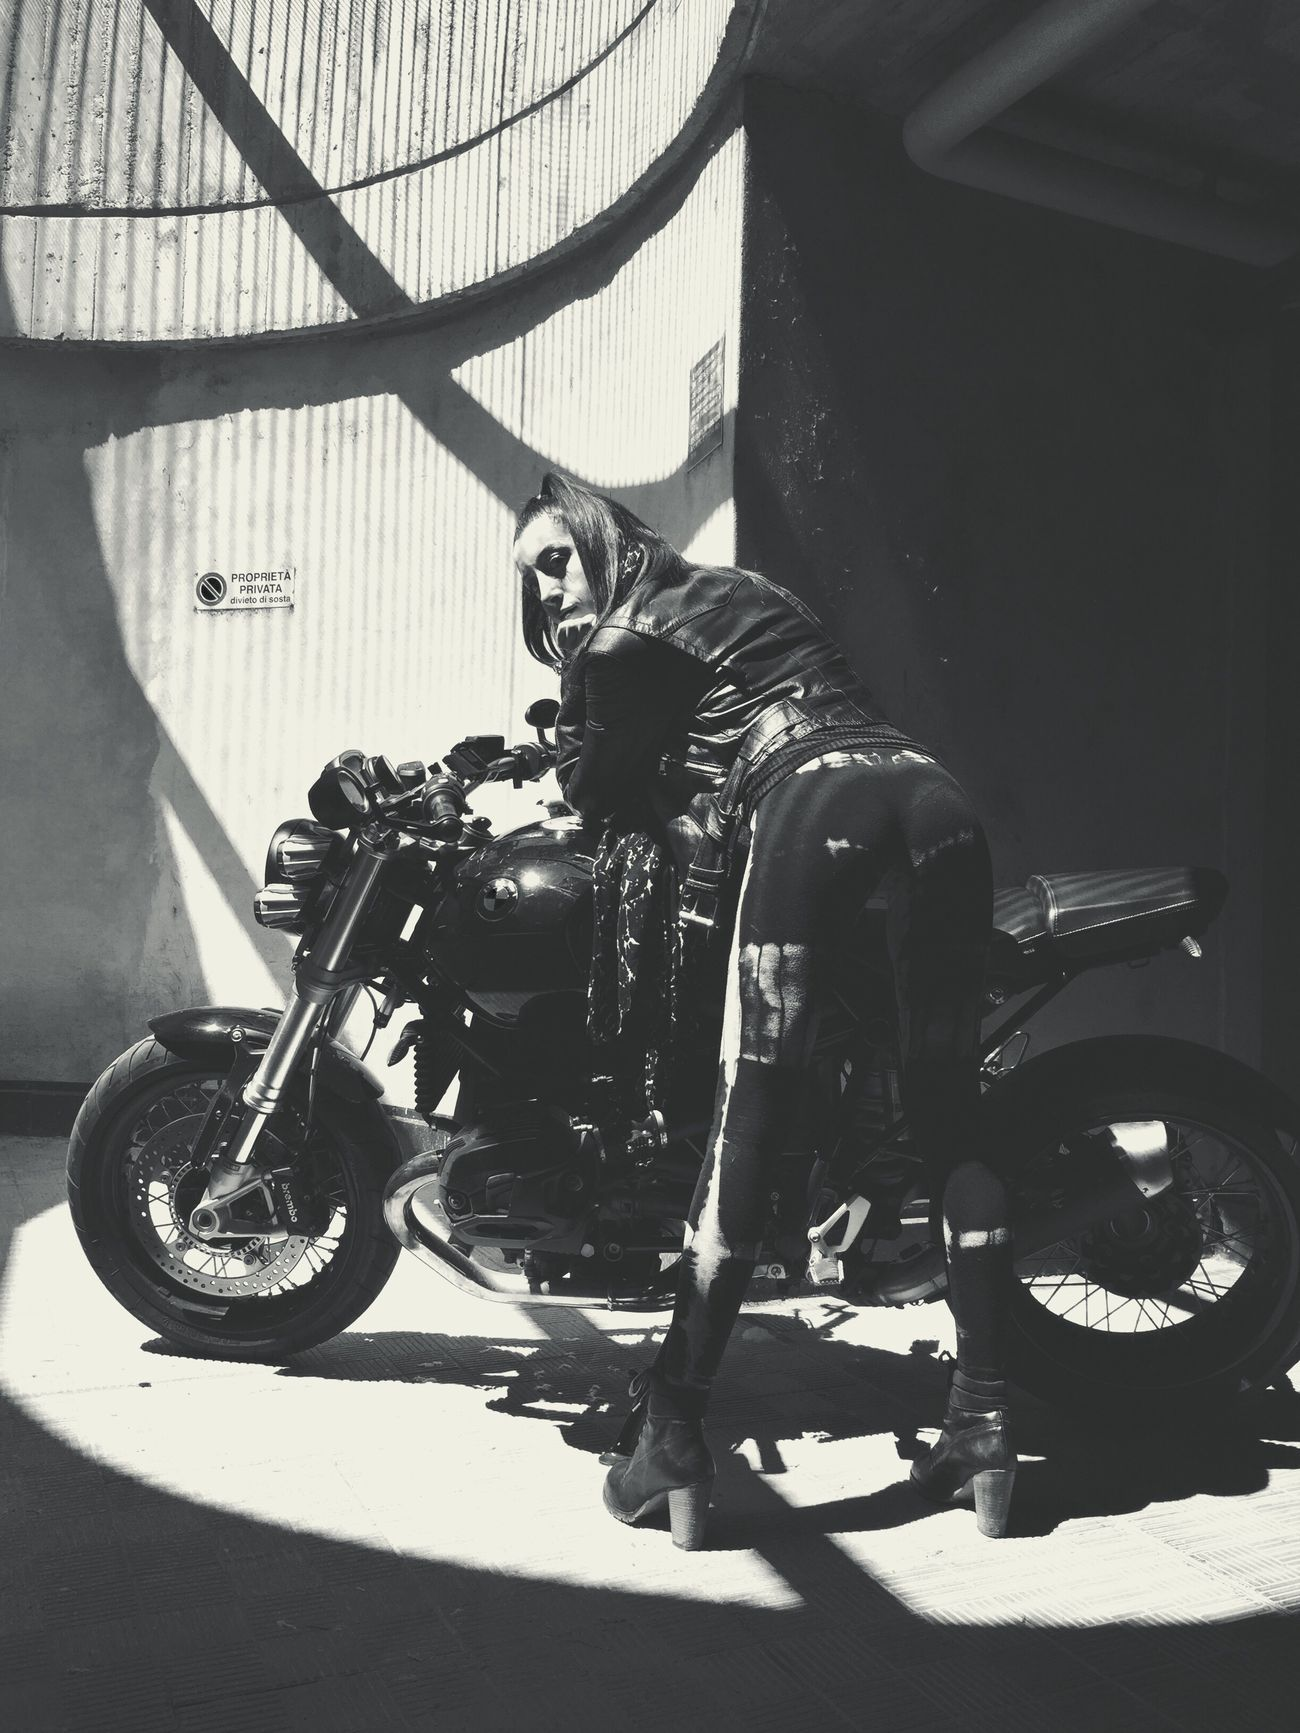 Poser Lina My Love Poser ❤ PoserPics Fake Biker Girl Black And White Black And White Photography Black And White Portrait Female Portraits Portrait Of A Woman Strongwoman